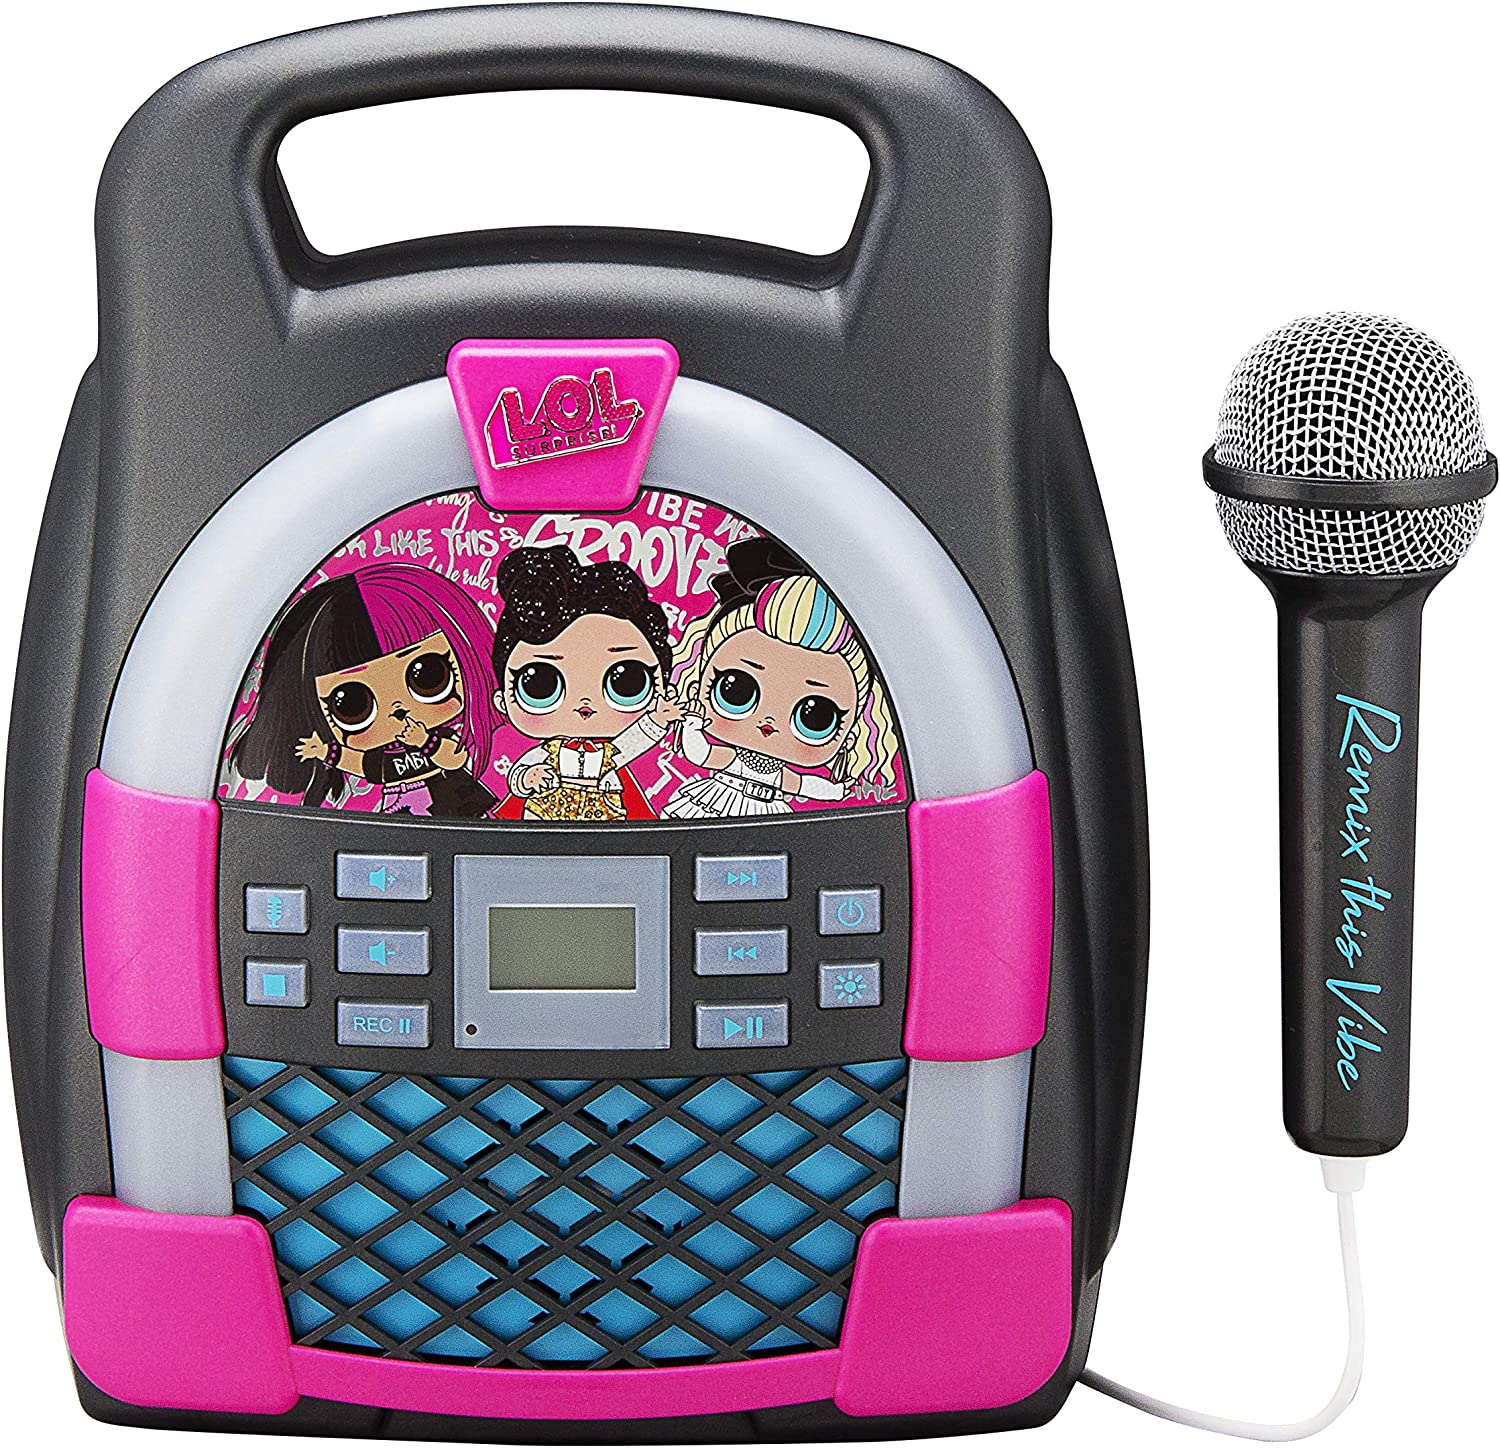 Bluetooth Portable MP3 Karaoke Machine Player with Light Show Store Hours of Music with Built in Memory Sing Along Using The Real Working Microphone Surprise Remix KIDdesigns L.O.L